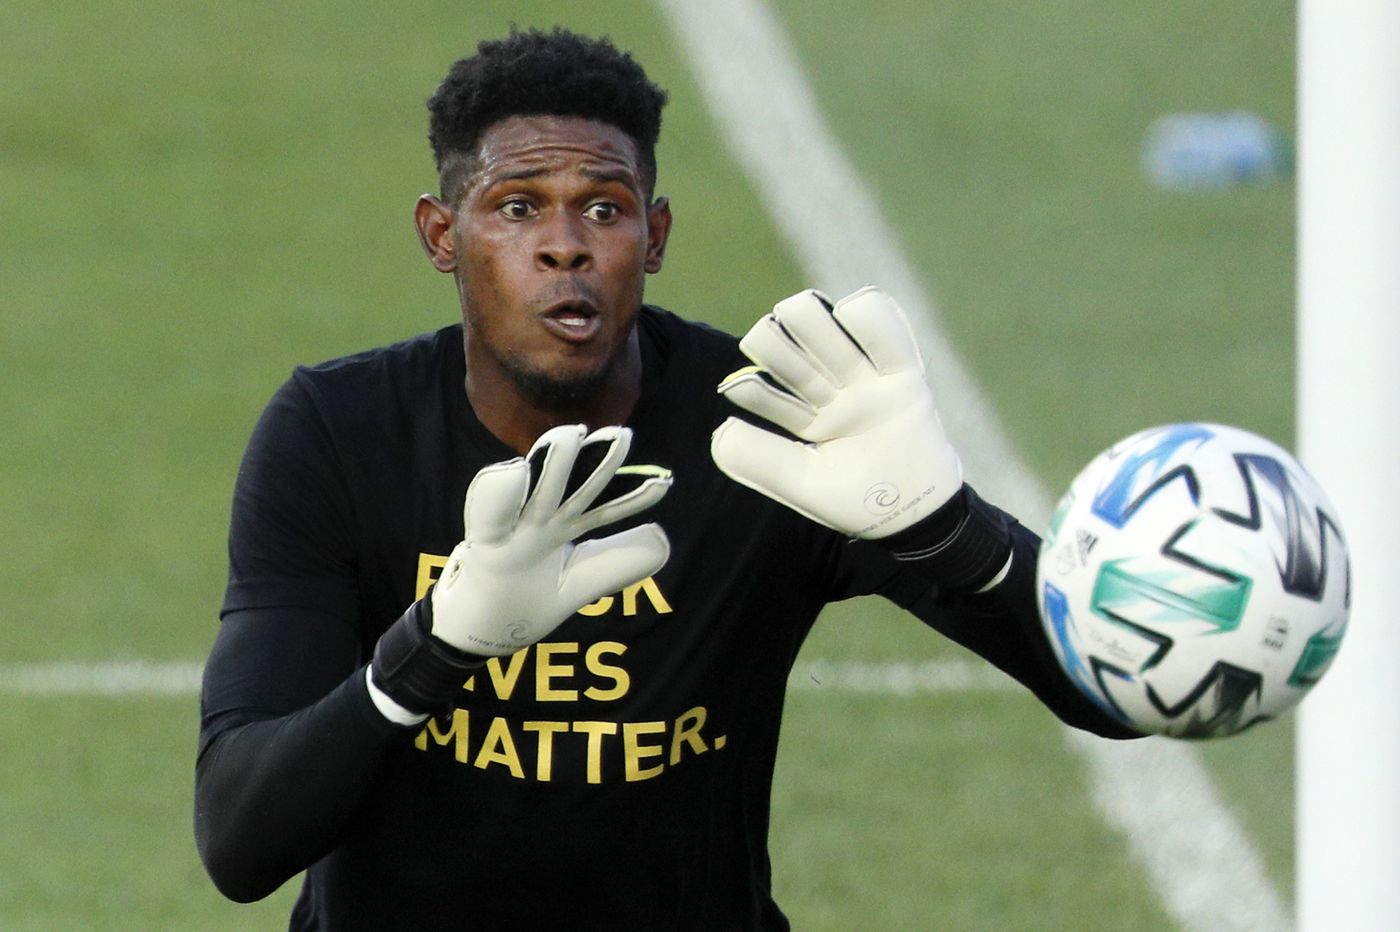 Union's Andre Blake wins MLS goalkeeper of the year award